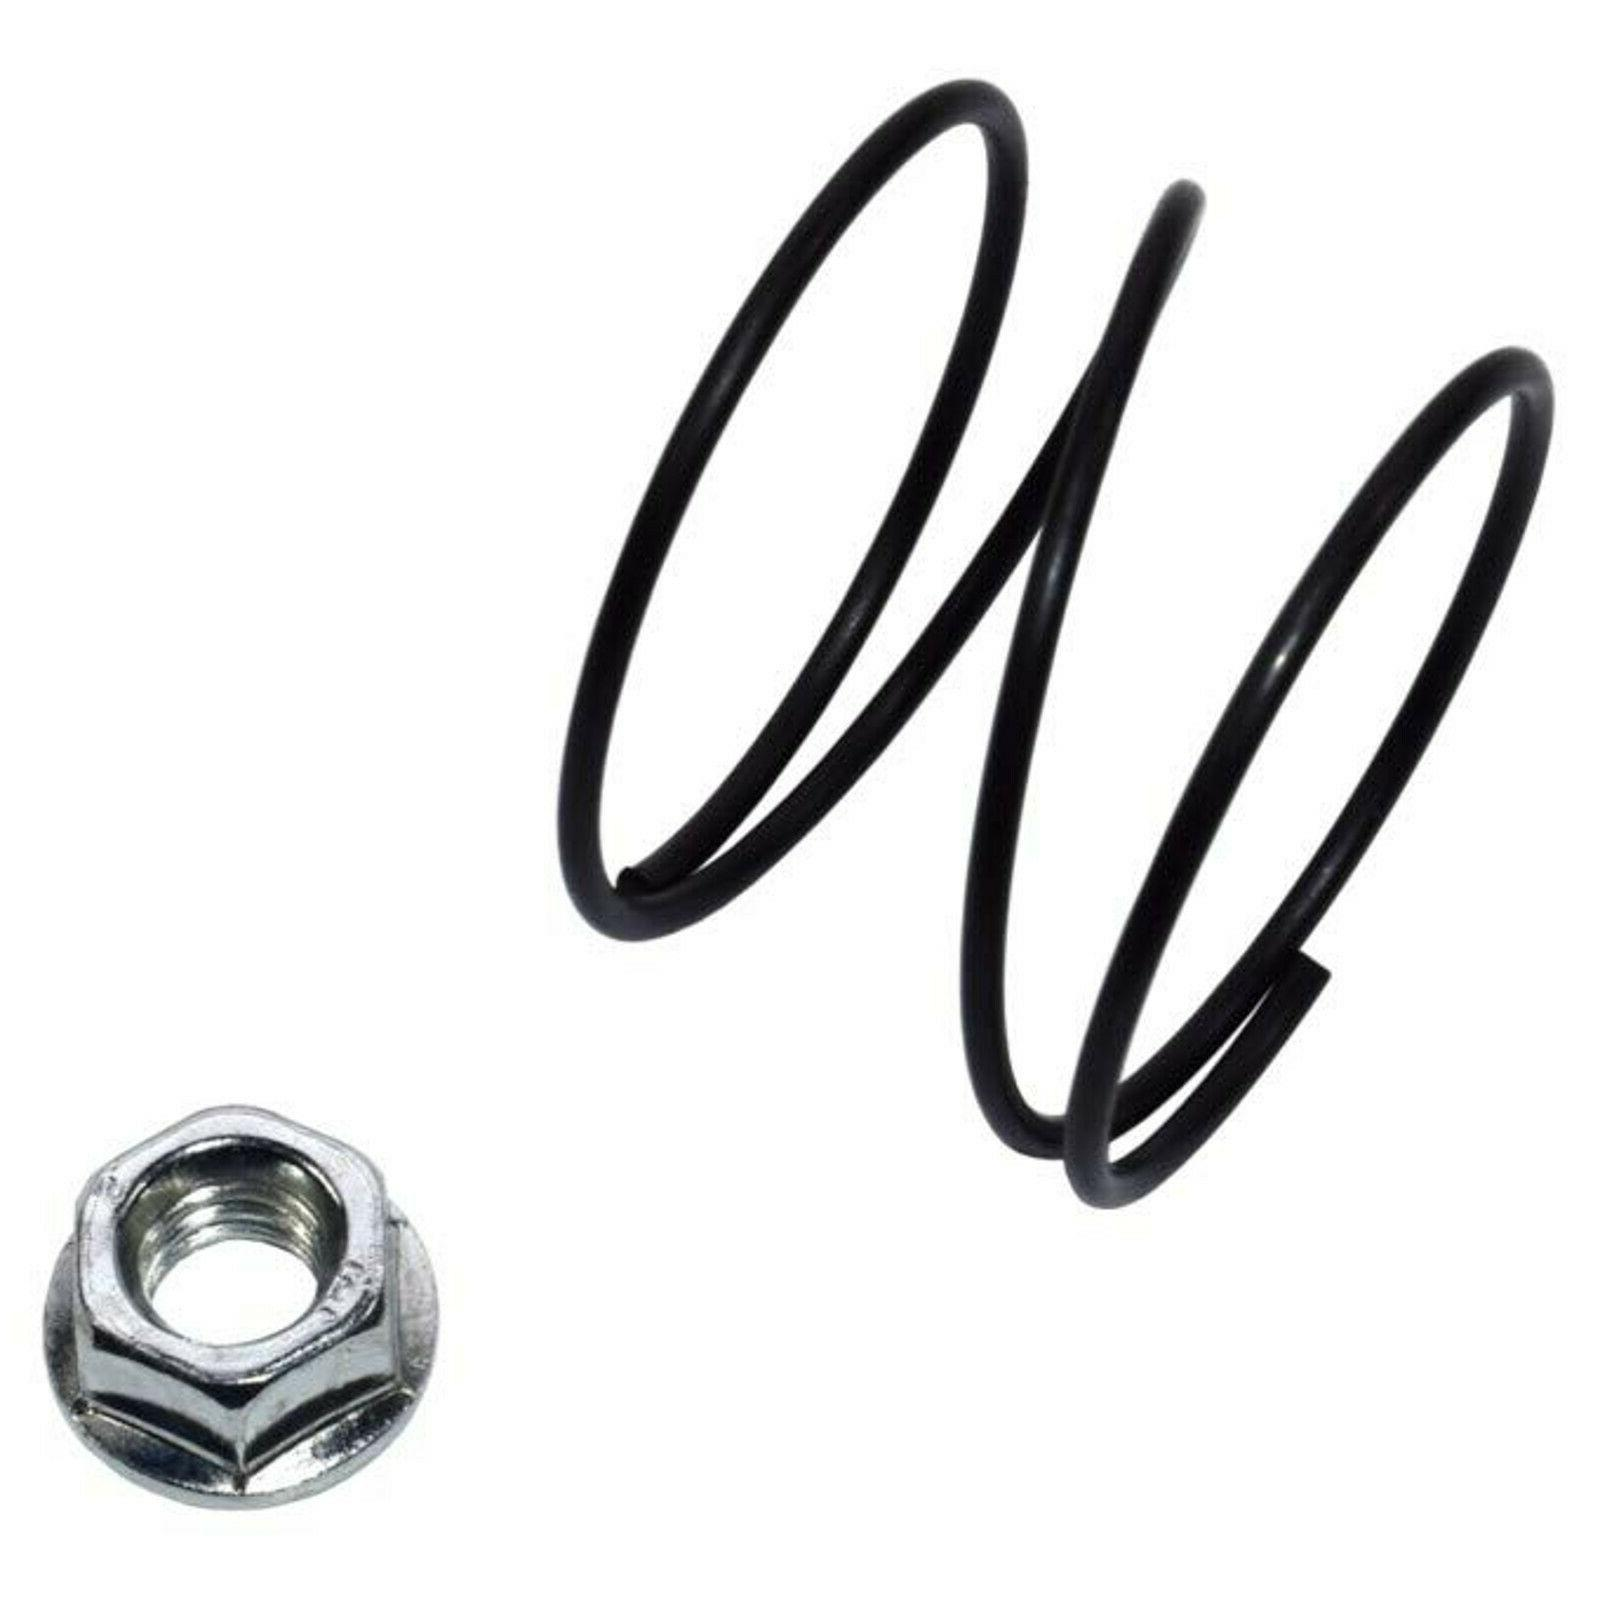 HQRP Kit for Kenmore Pulley, Replacement